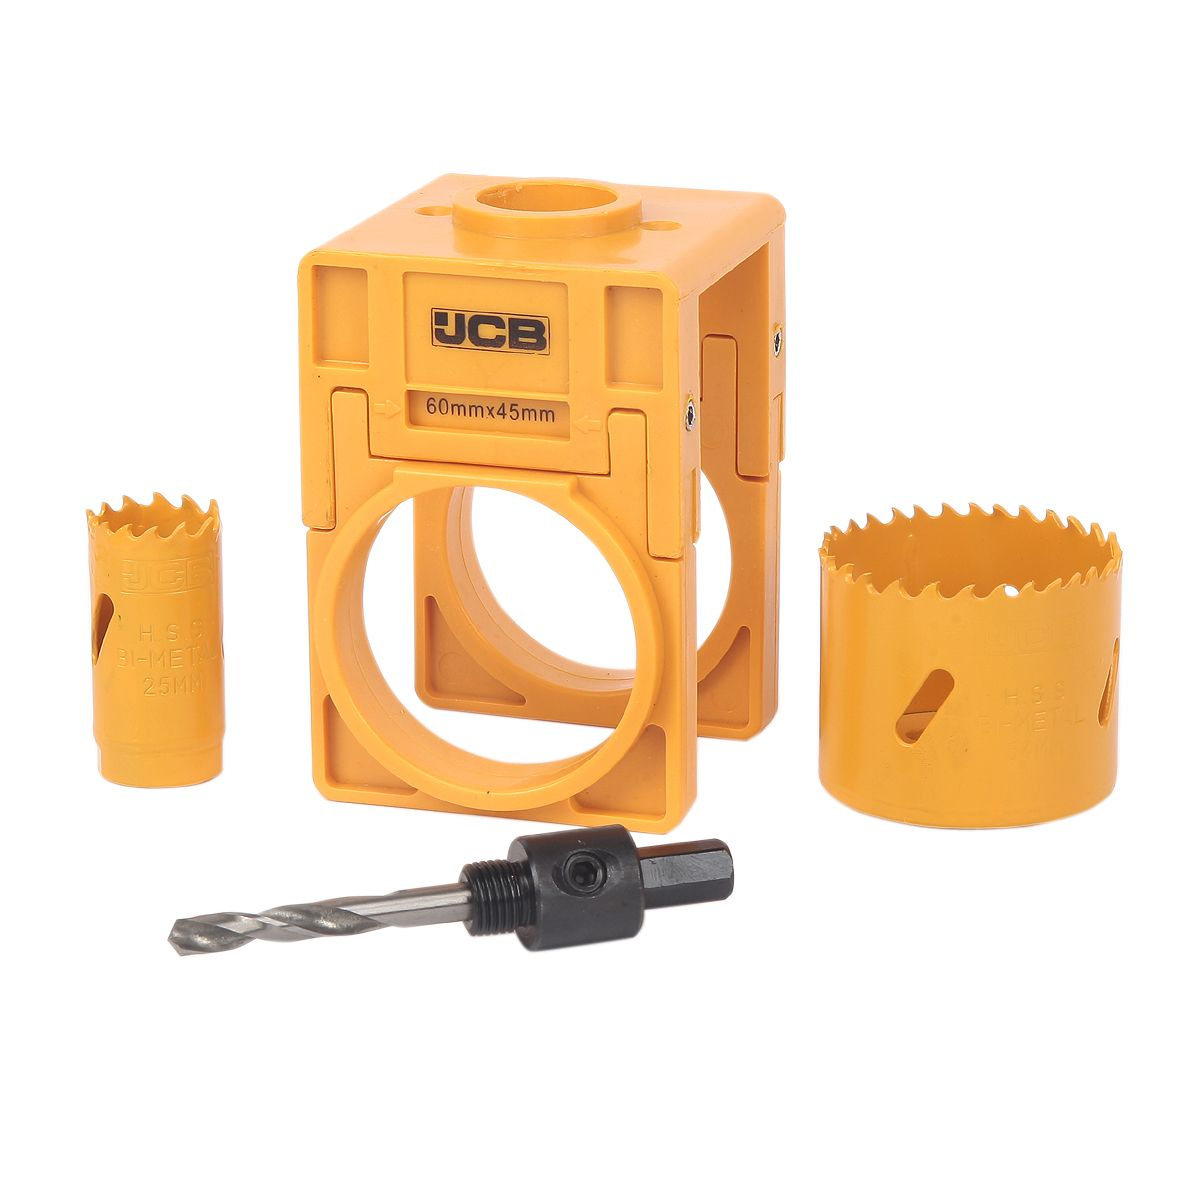 Jcb Door Lock Installation Kit Pack Of 4 Departments